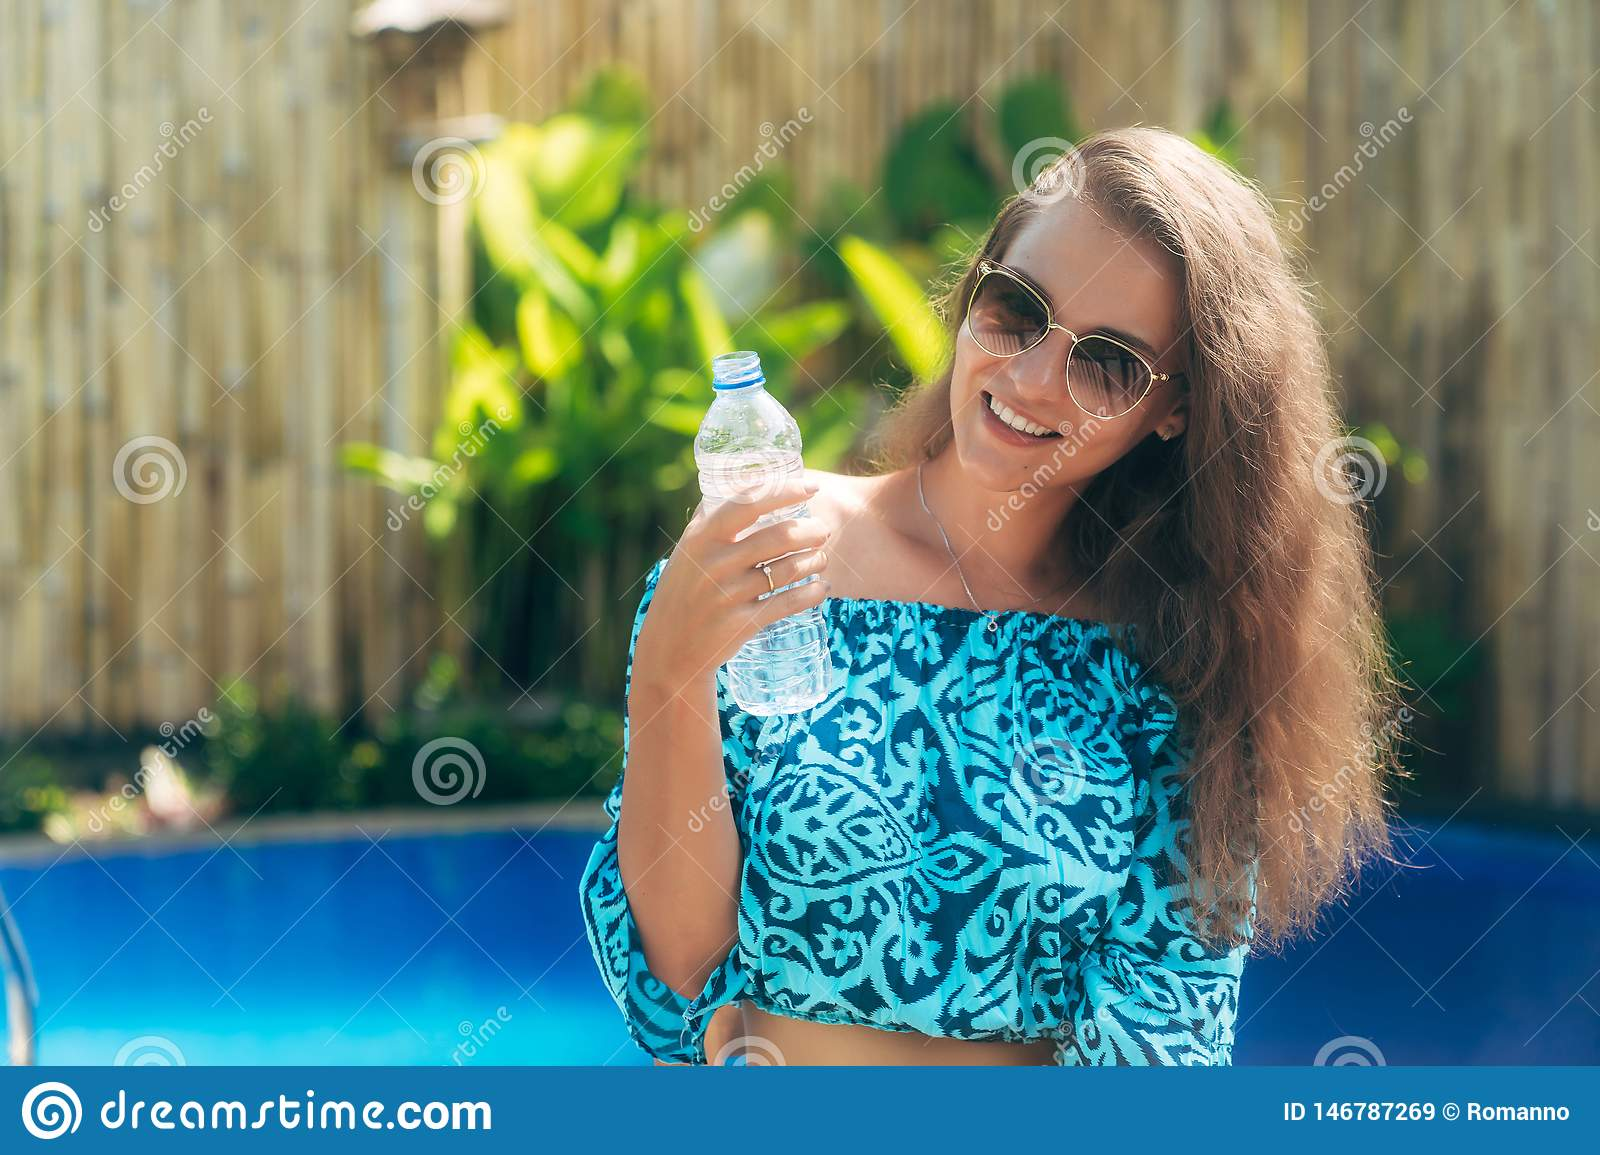 Beautiful Girl In Sunglasses And Blue Top Sits Near Swimming ...